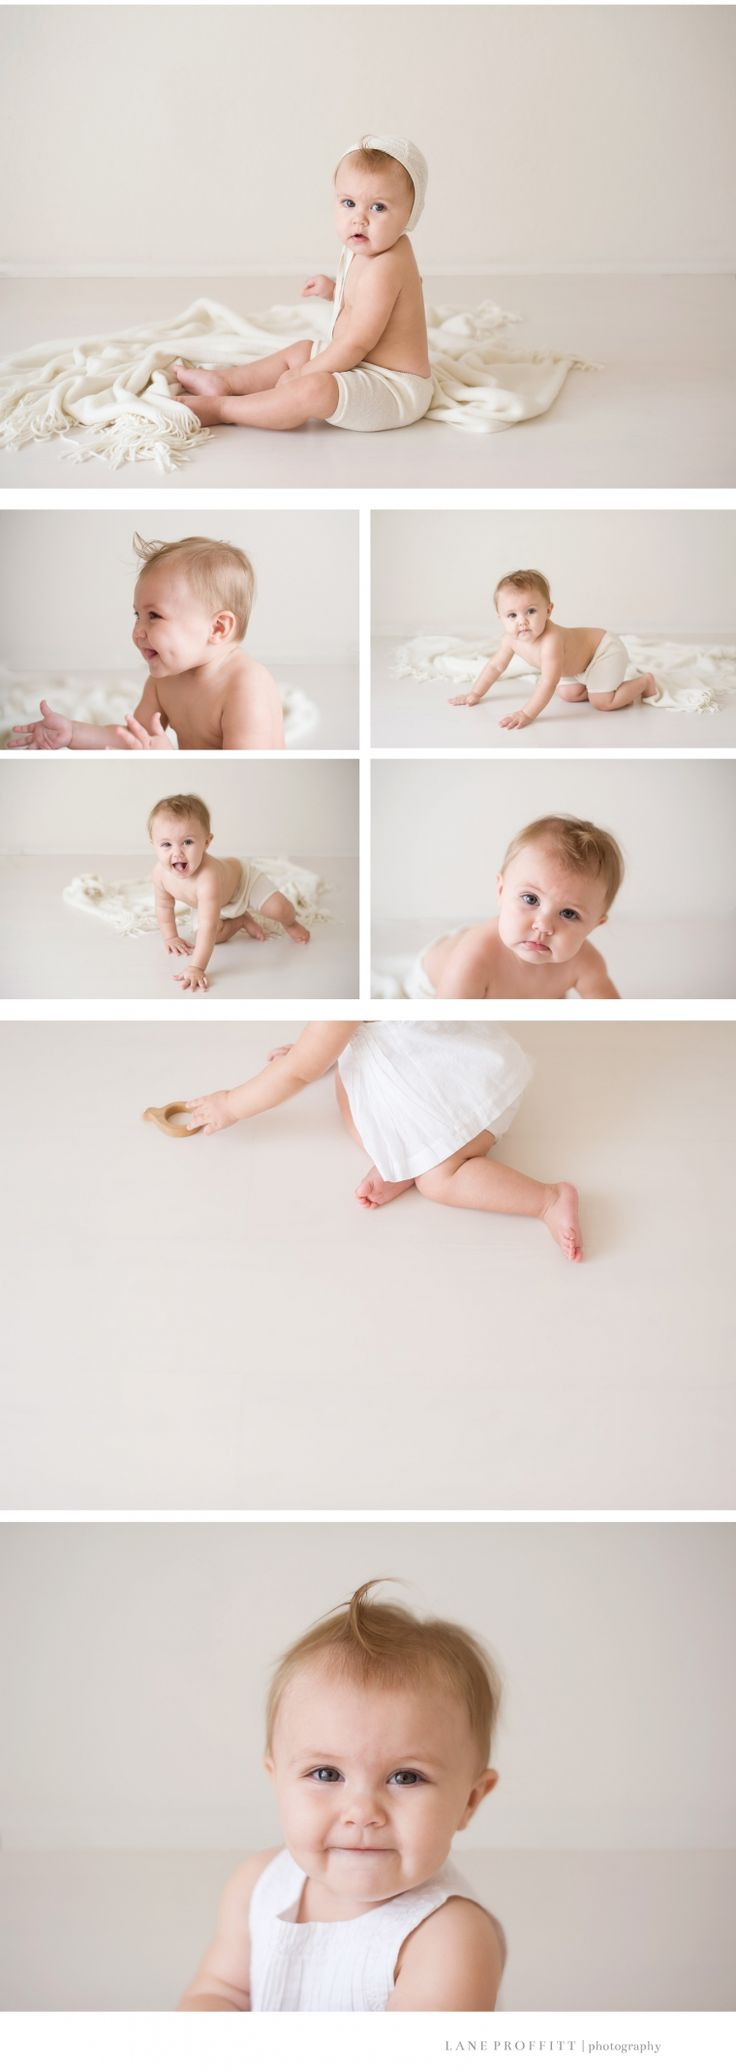 Simple, clean, and natural baby session. White and cream clothing.  Copyright | Fort Worth Baby Photographer | Lane Proffitt Photography